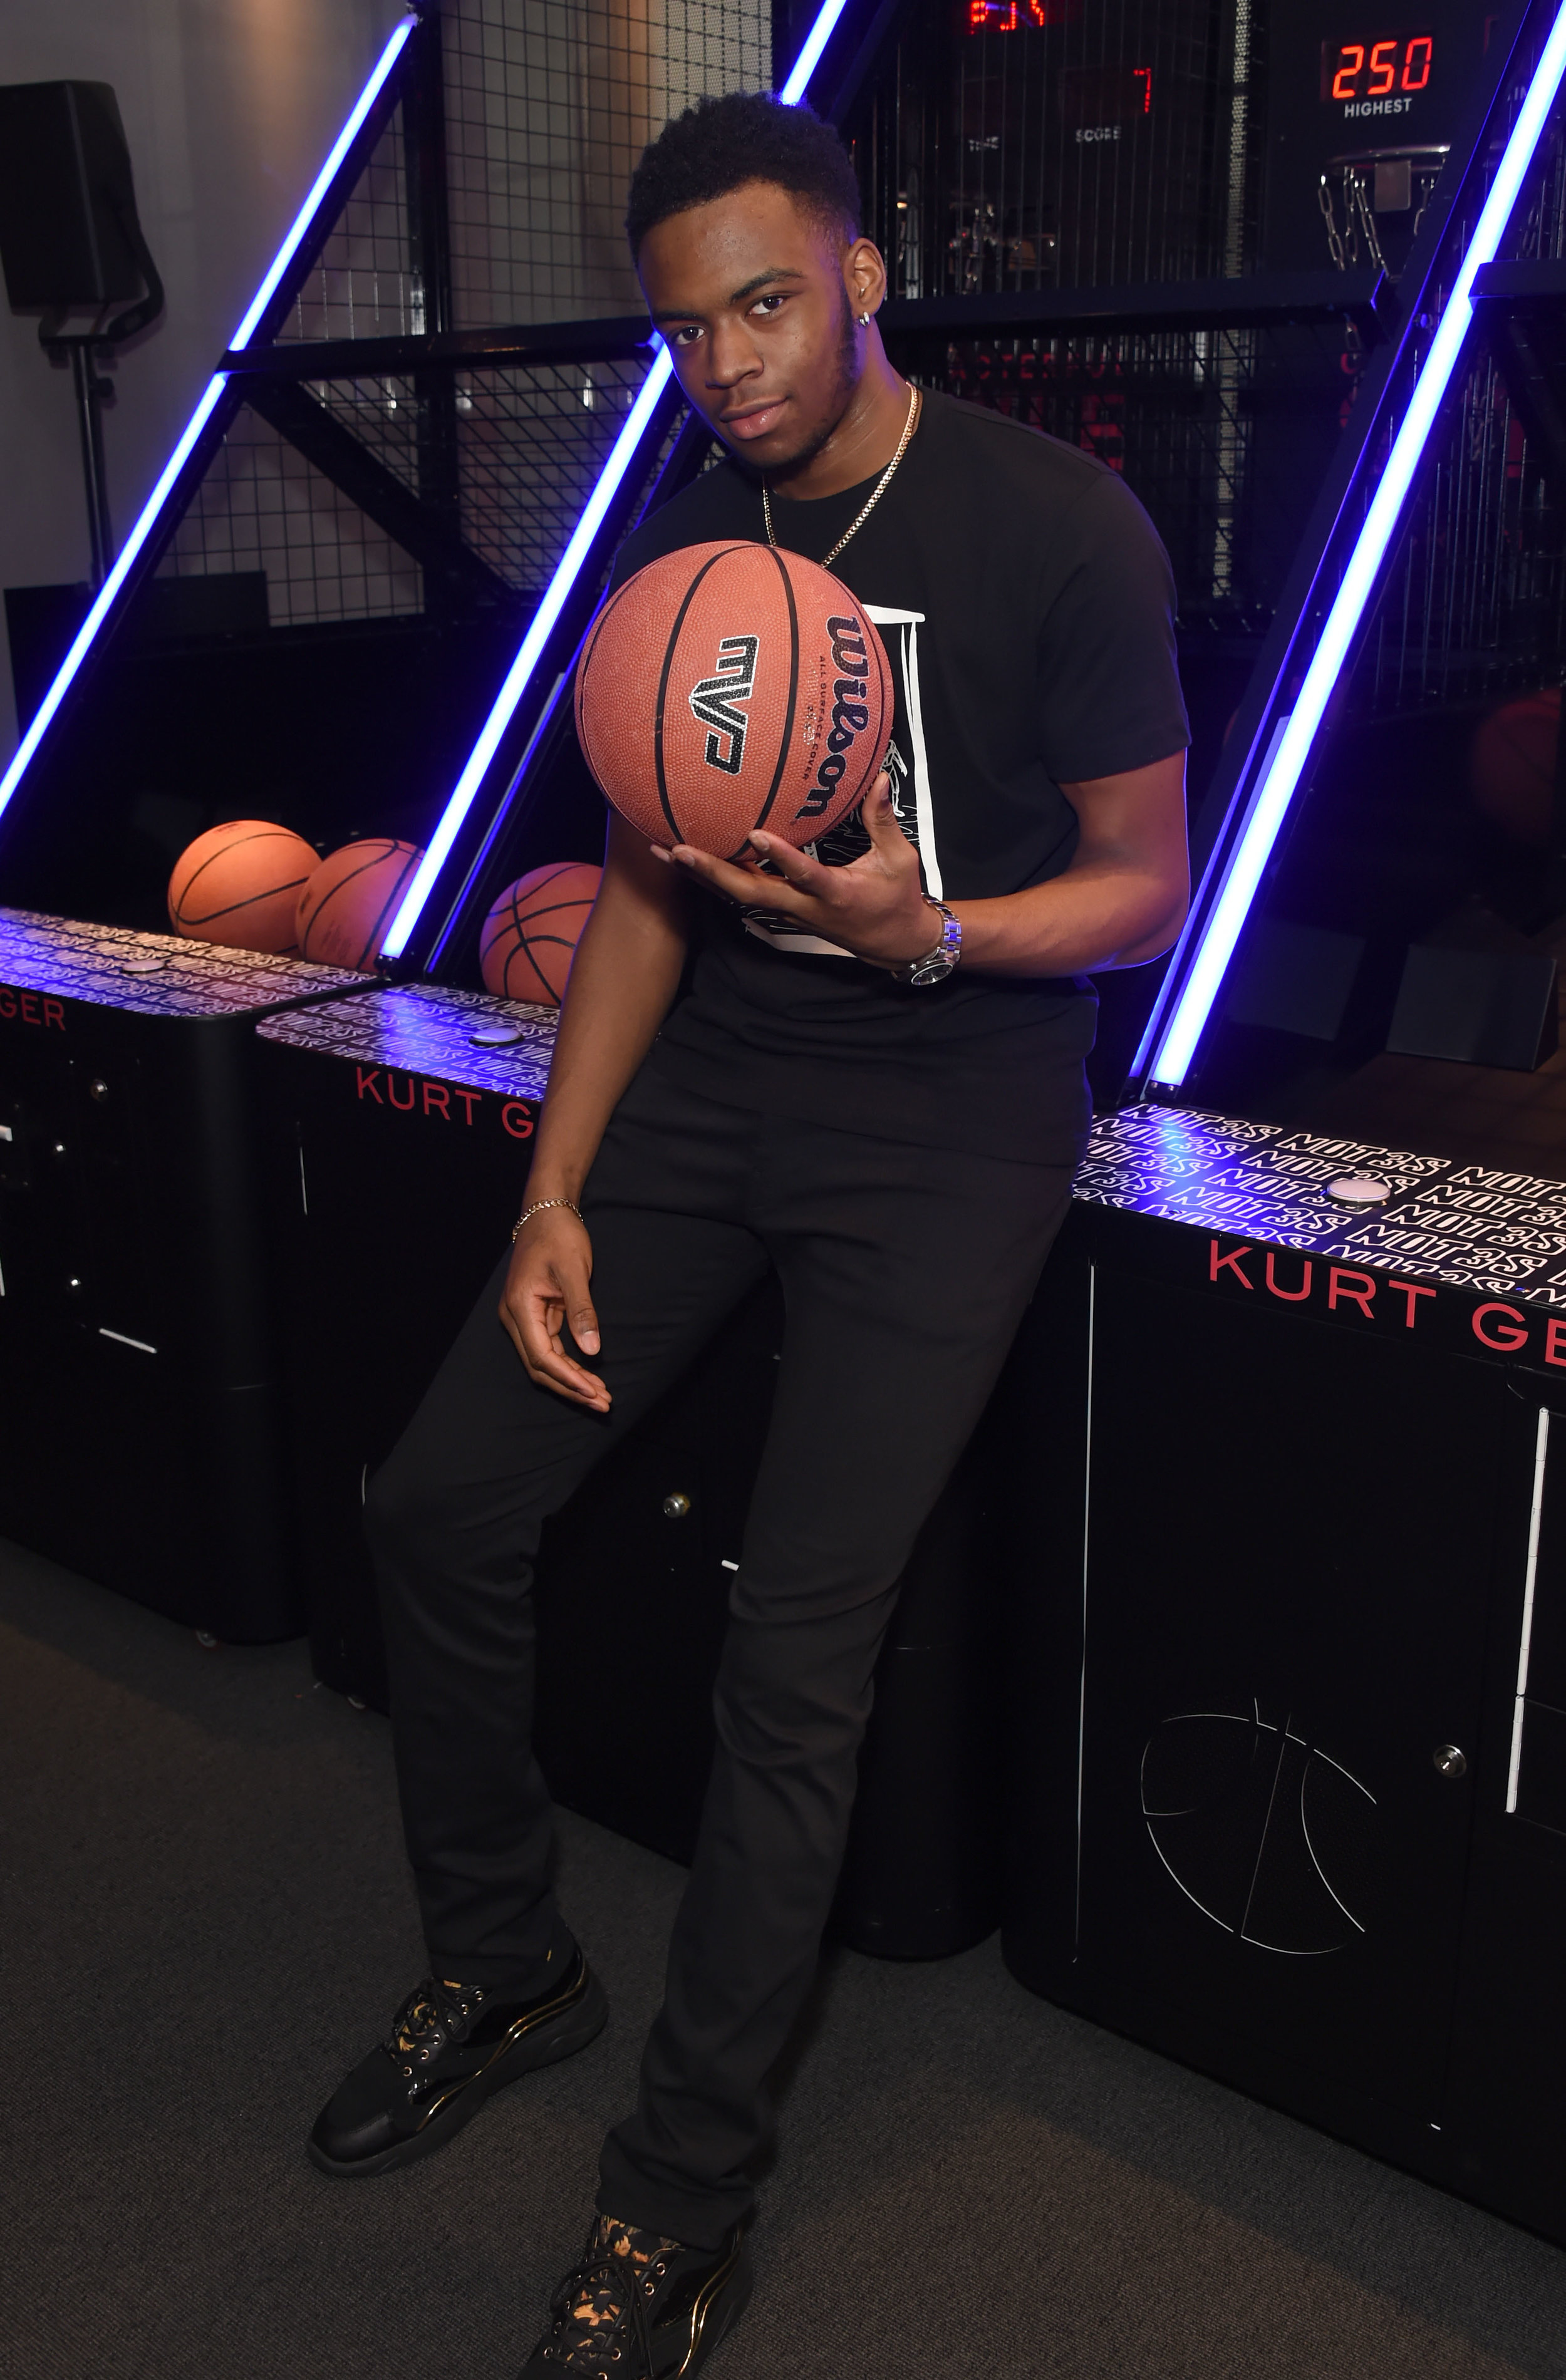 Not3s at the Kurt Geiger Event holding a basketball